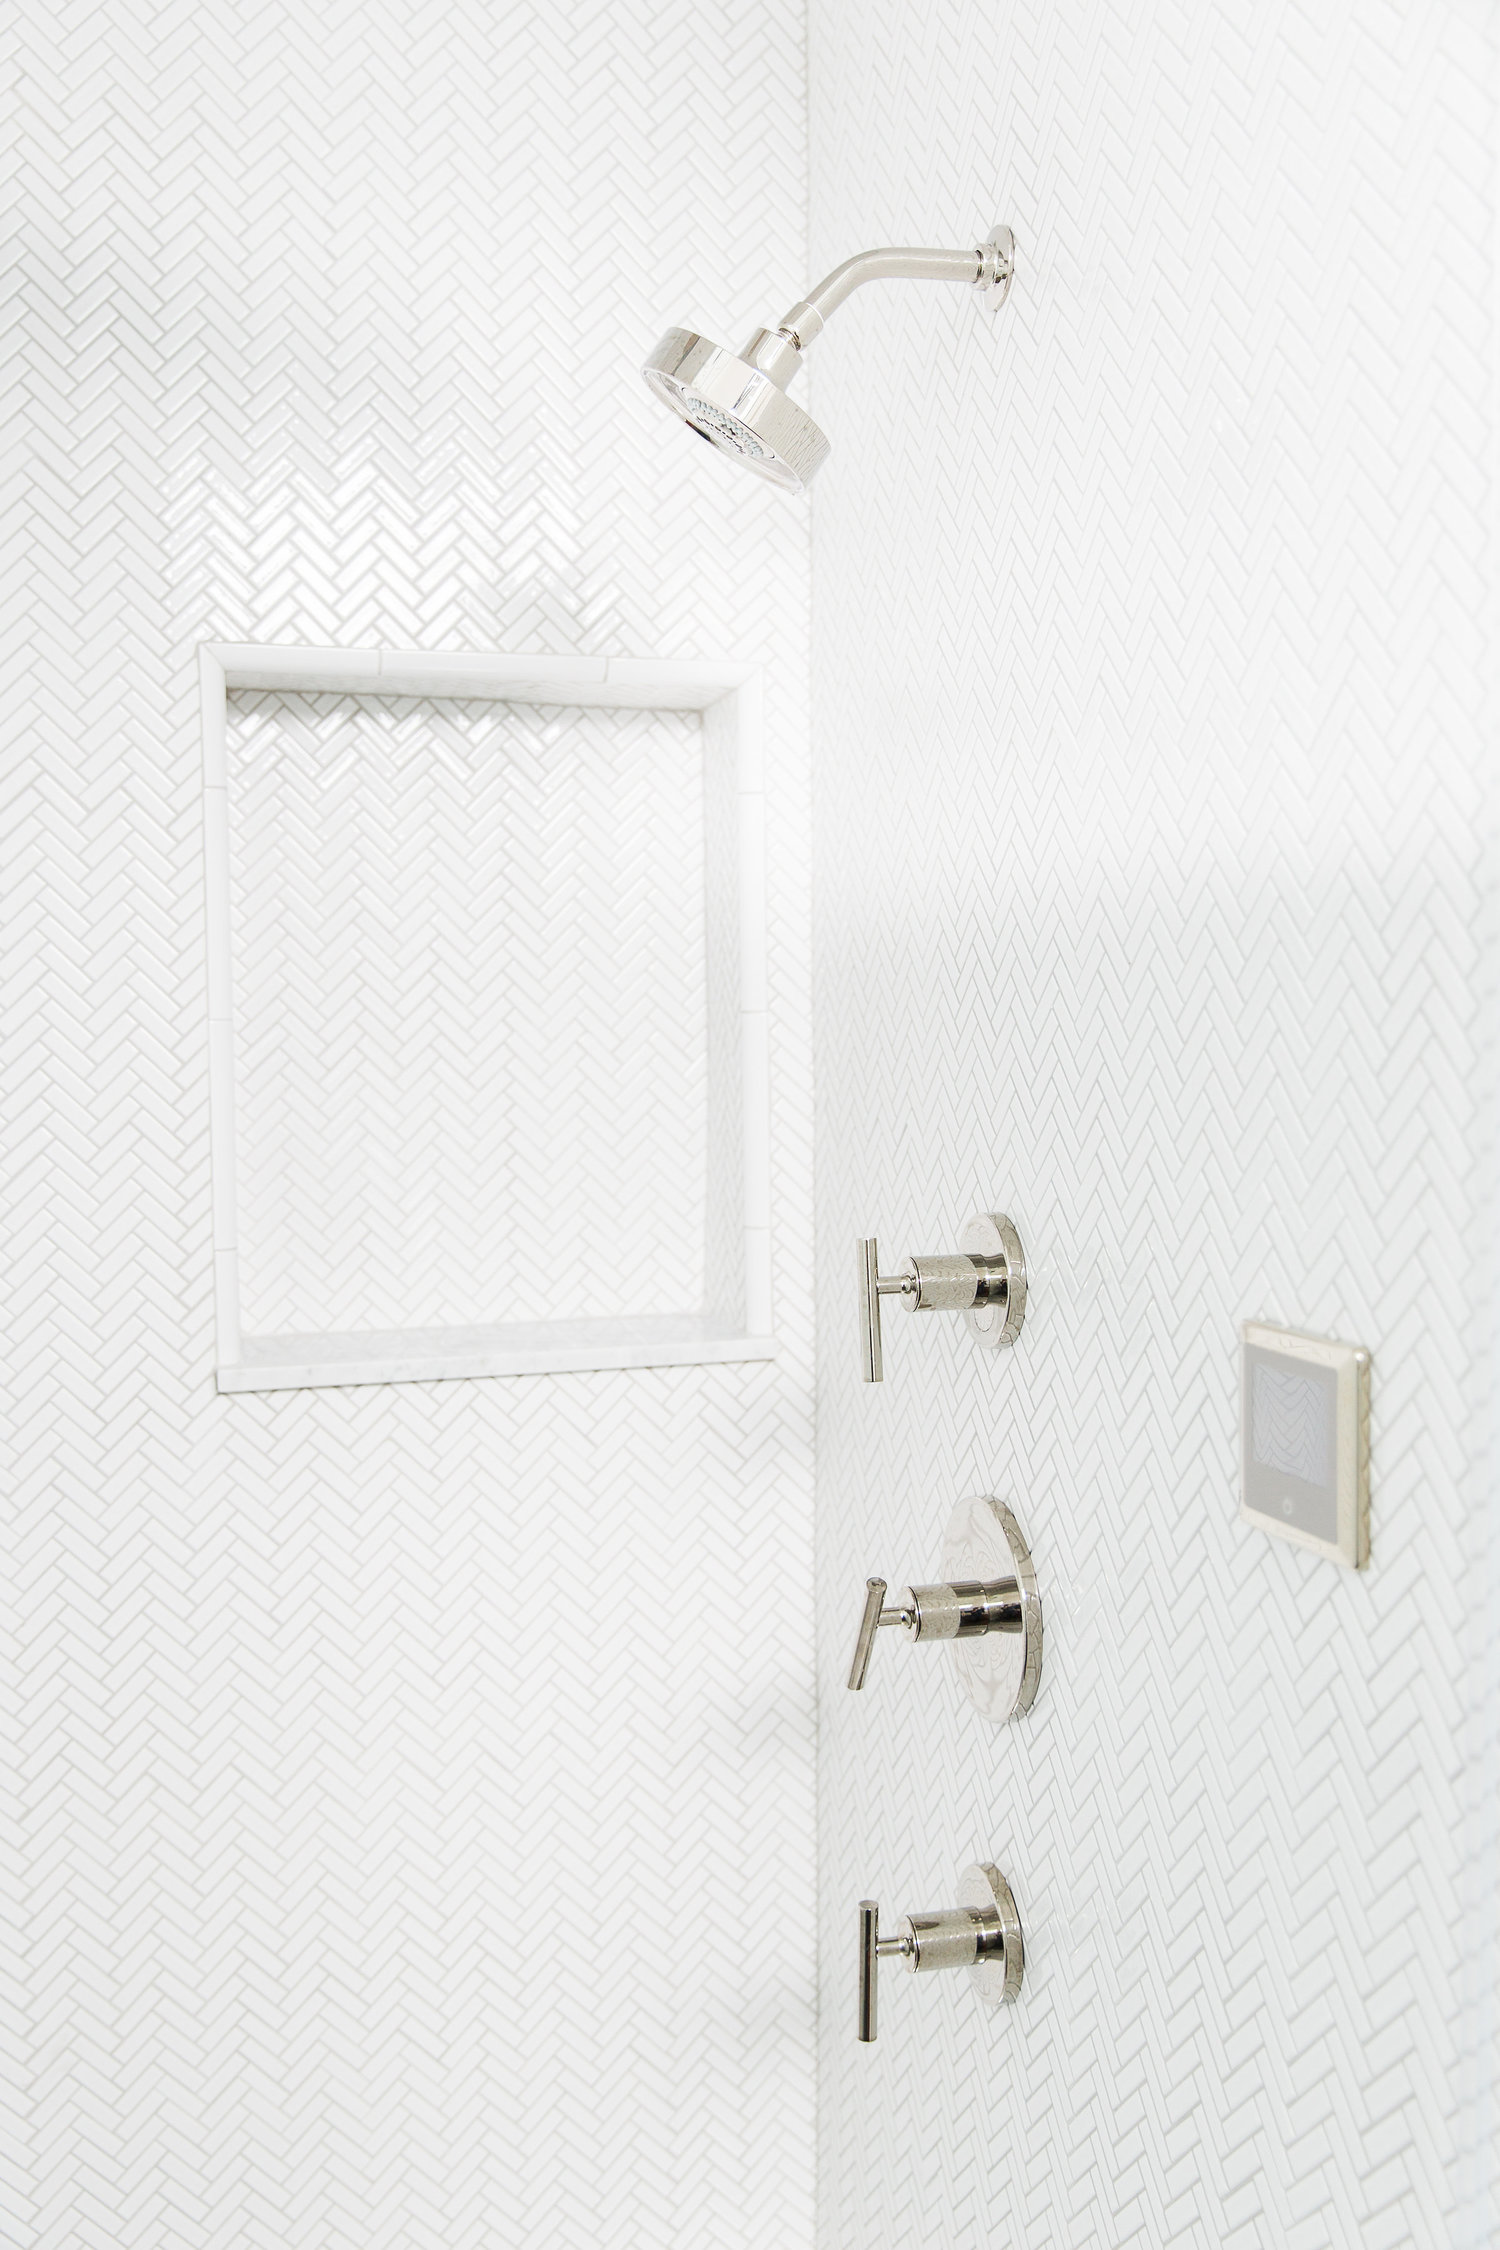 White bathroom shower with silver accents